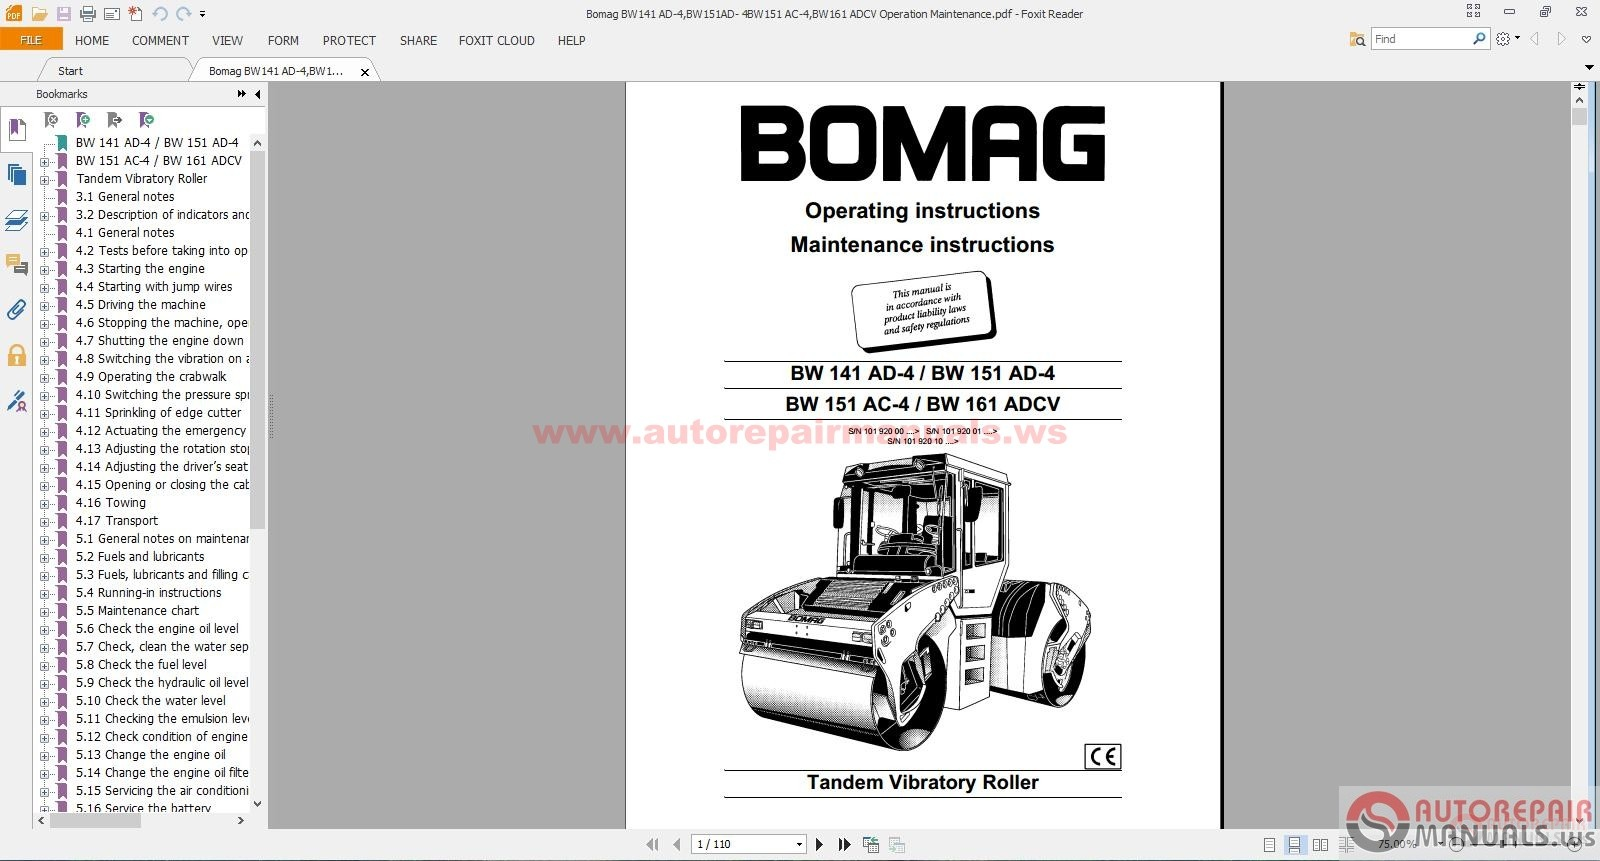 Bomag Bw Ad Bw Ac Bw Ad Bw Ac Bw Ad Bw Ac Pdf further Takeuchi Full Set Service Training Service Manual Operator Part Manual in addition Land Rover Sport Wiring Diagram besides Volvo V V R Xc Xc Wiring Diagram likewise . on bomag wiring diagram